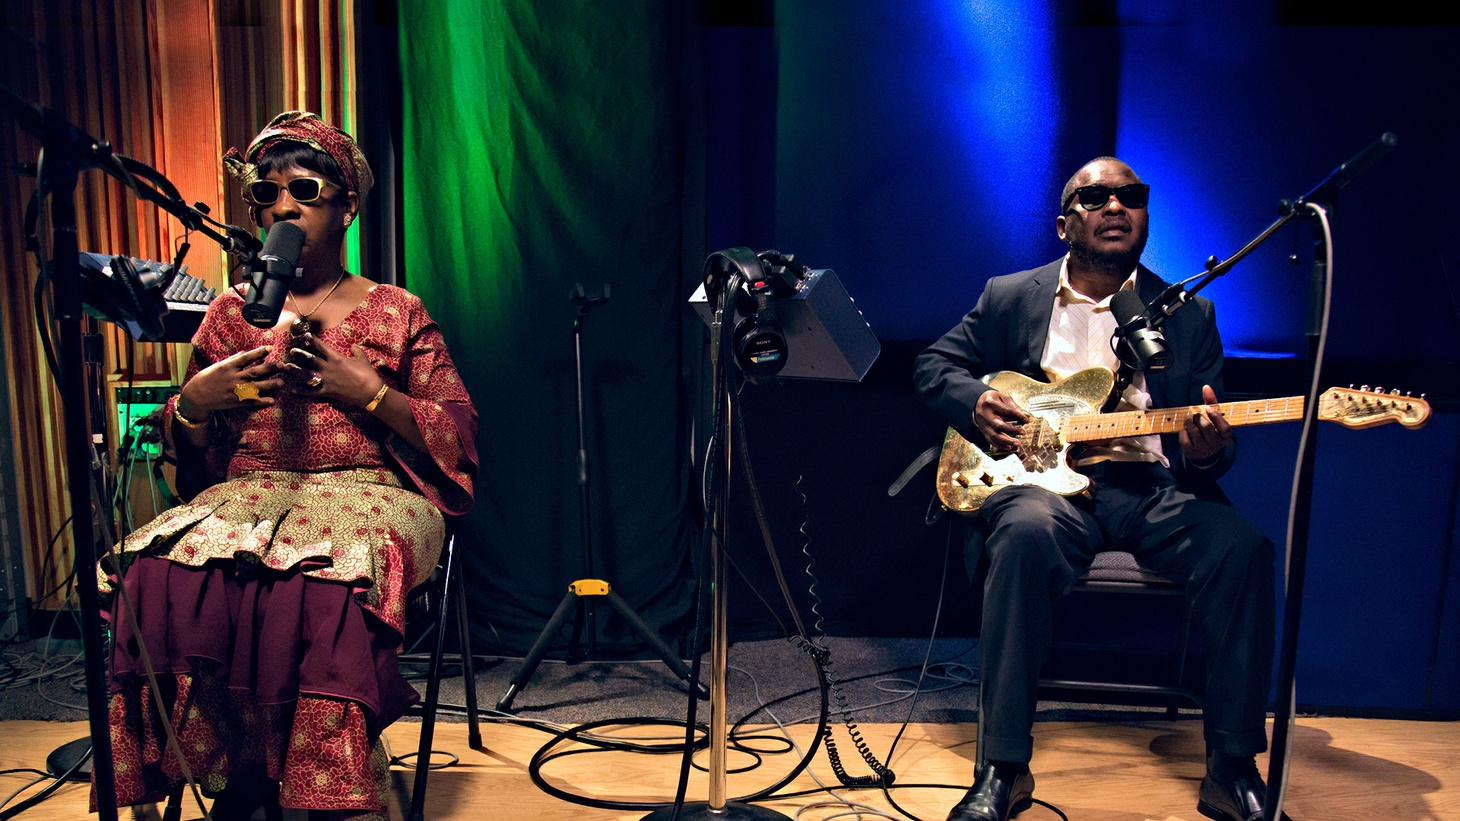 Grammy-nominated Malian musical duo Amadou & Mariam stop by our studio to preview new music before the release of their forthcoming full-length album.